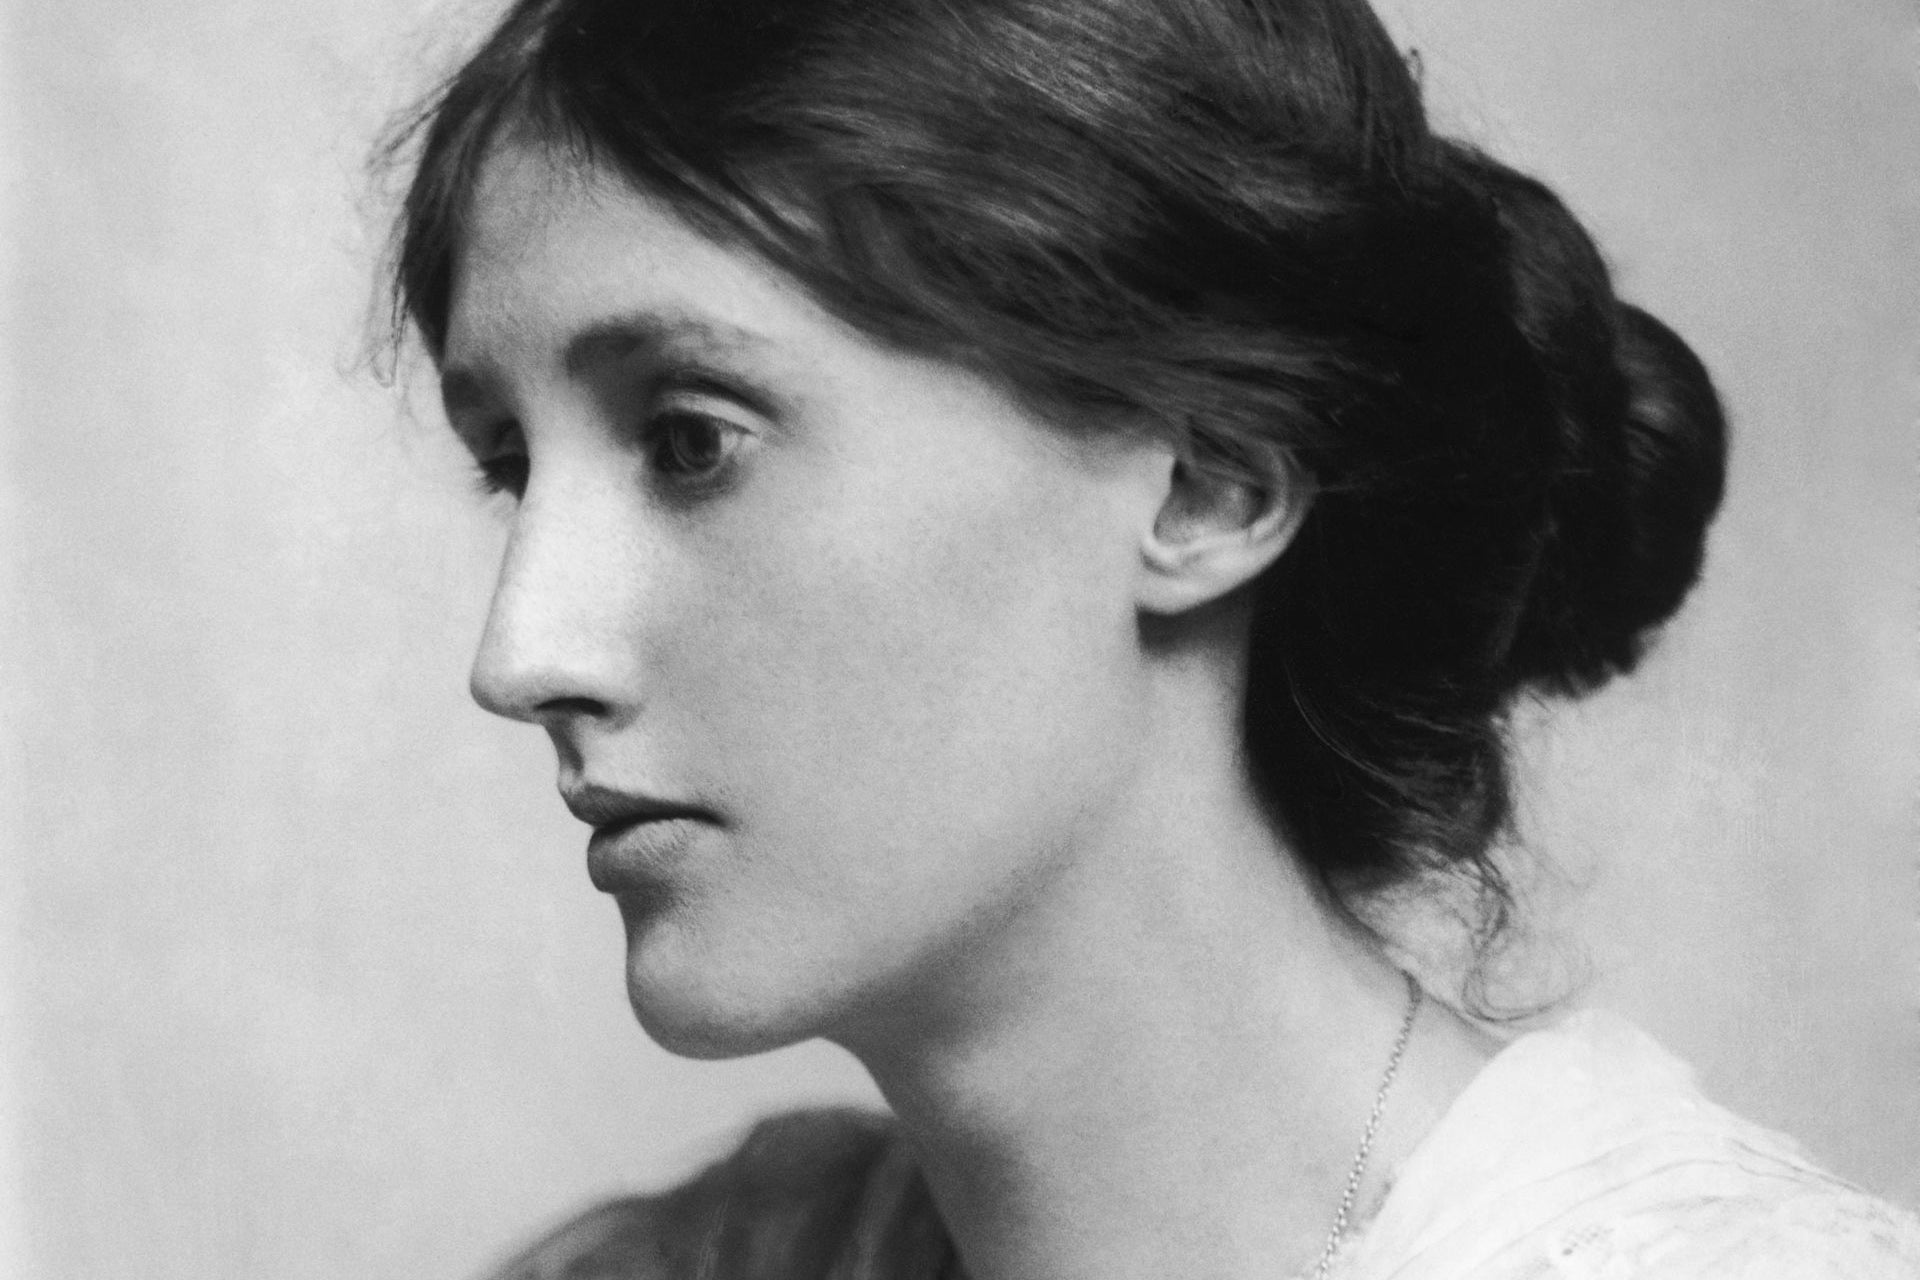 """""""[Virginia] Woolf was raised by people who had lost their faith and were trying to construct life practices and ethics that could sustain them and help them interpret the world,"""" says Harvard Divinity School Professor Stephanie Paulsell."""